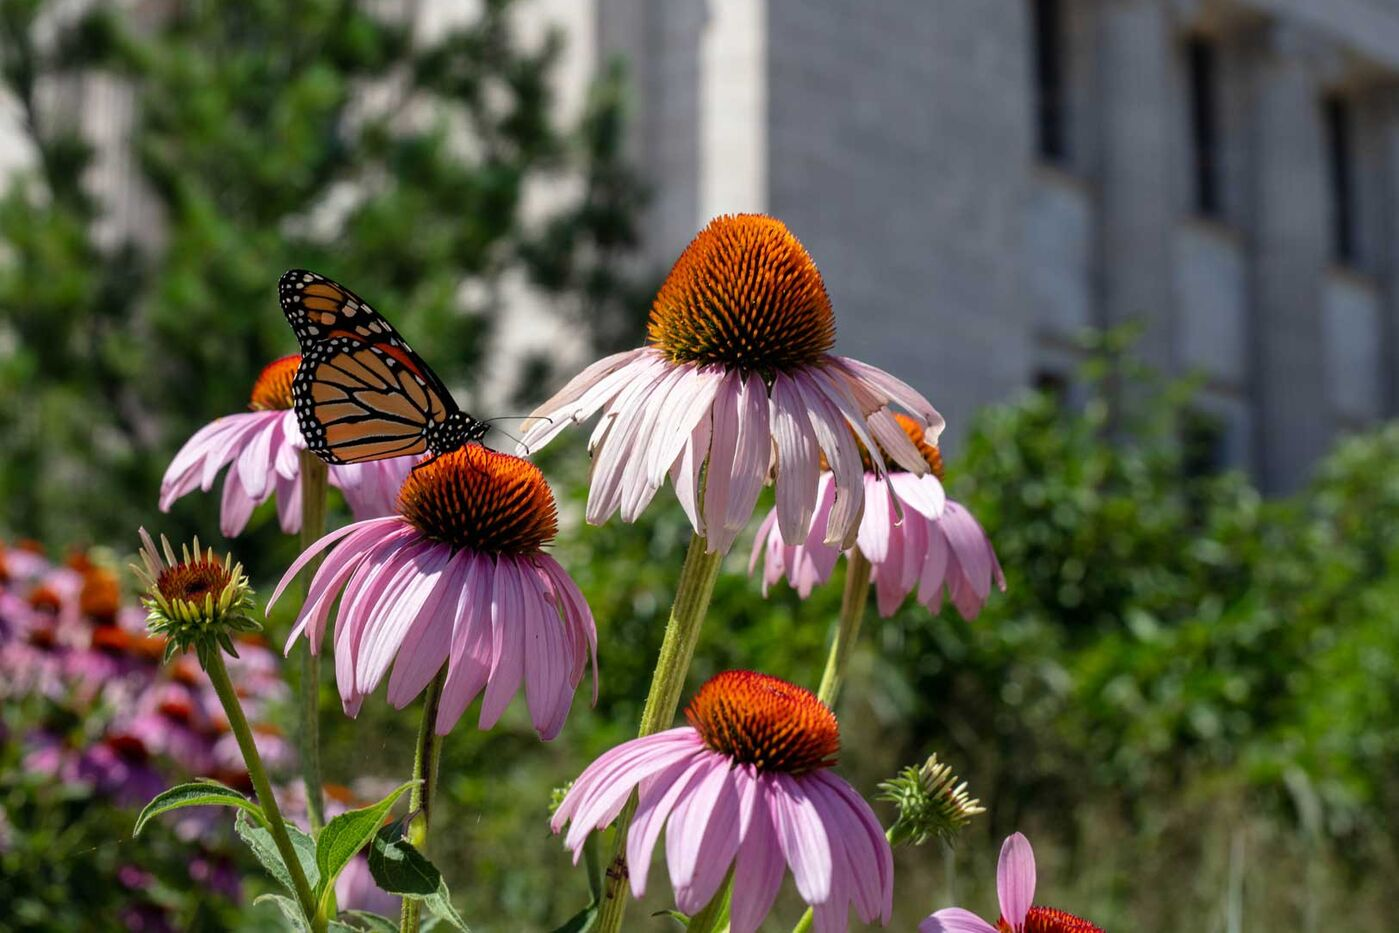 A monarch butterfly sits on a coneflower in front of the Field Museum.